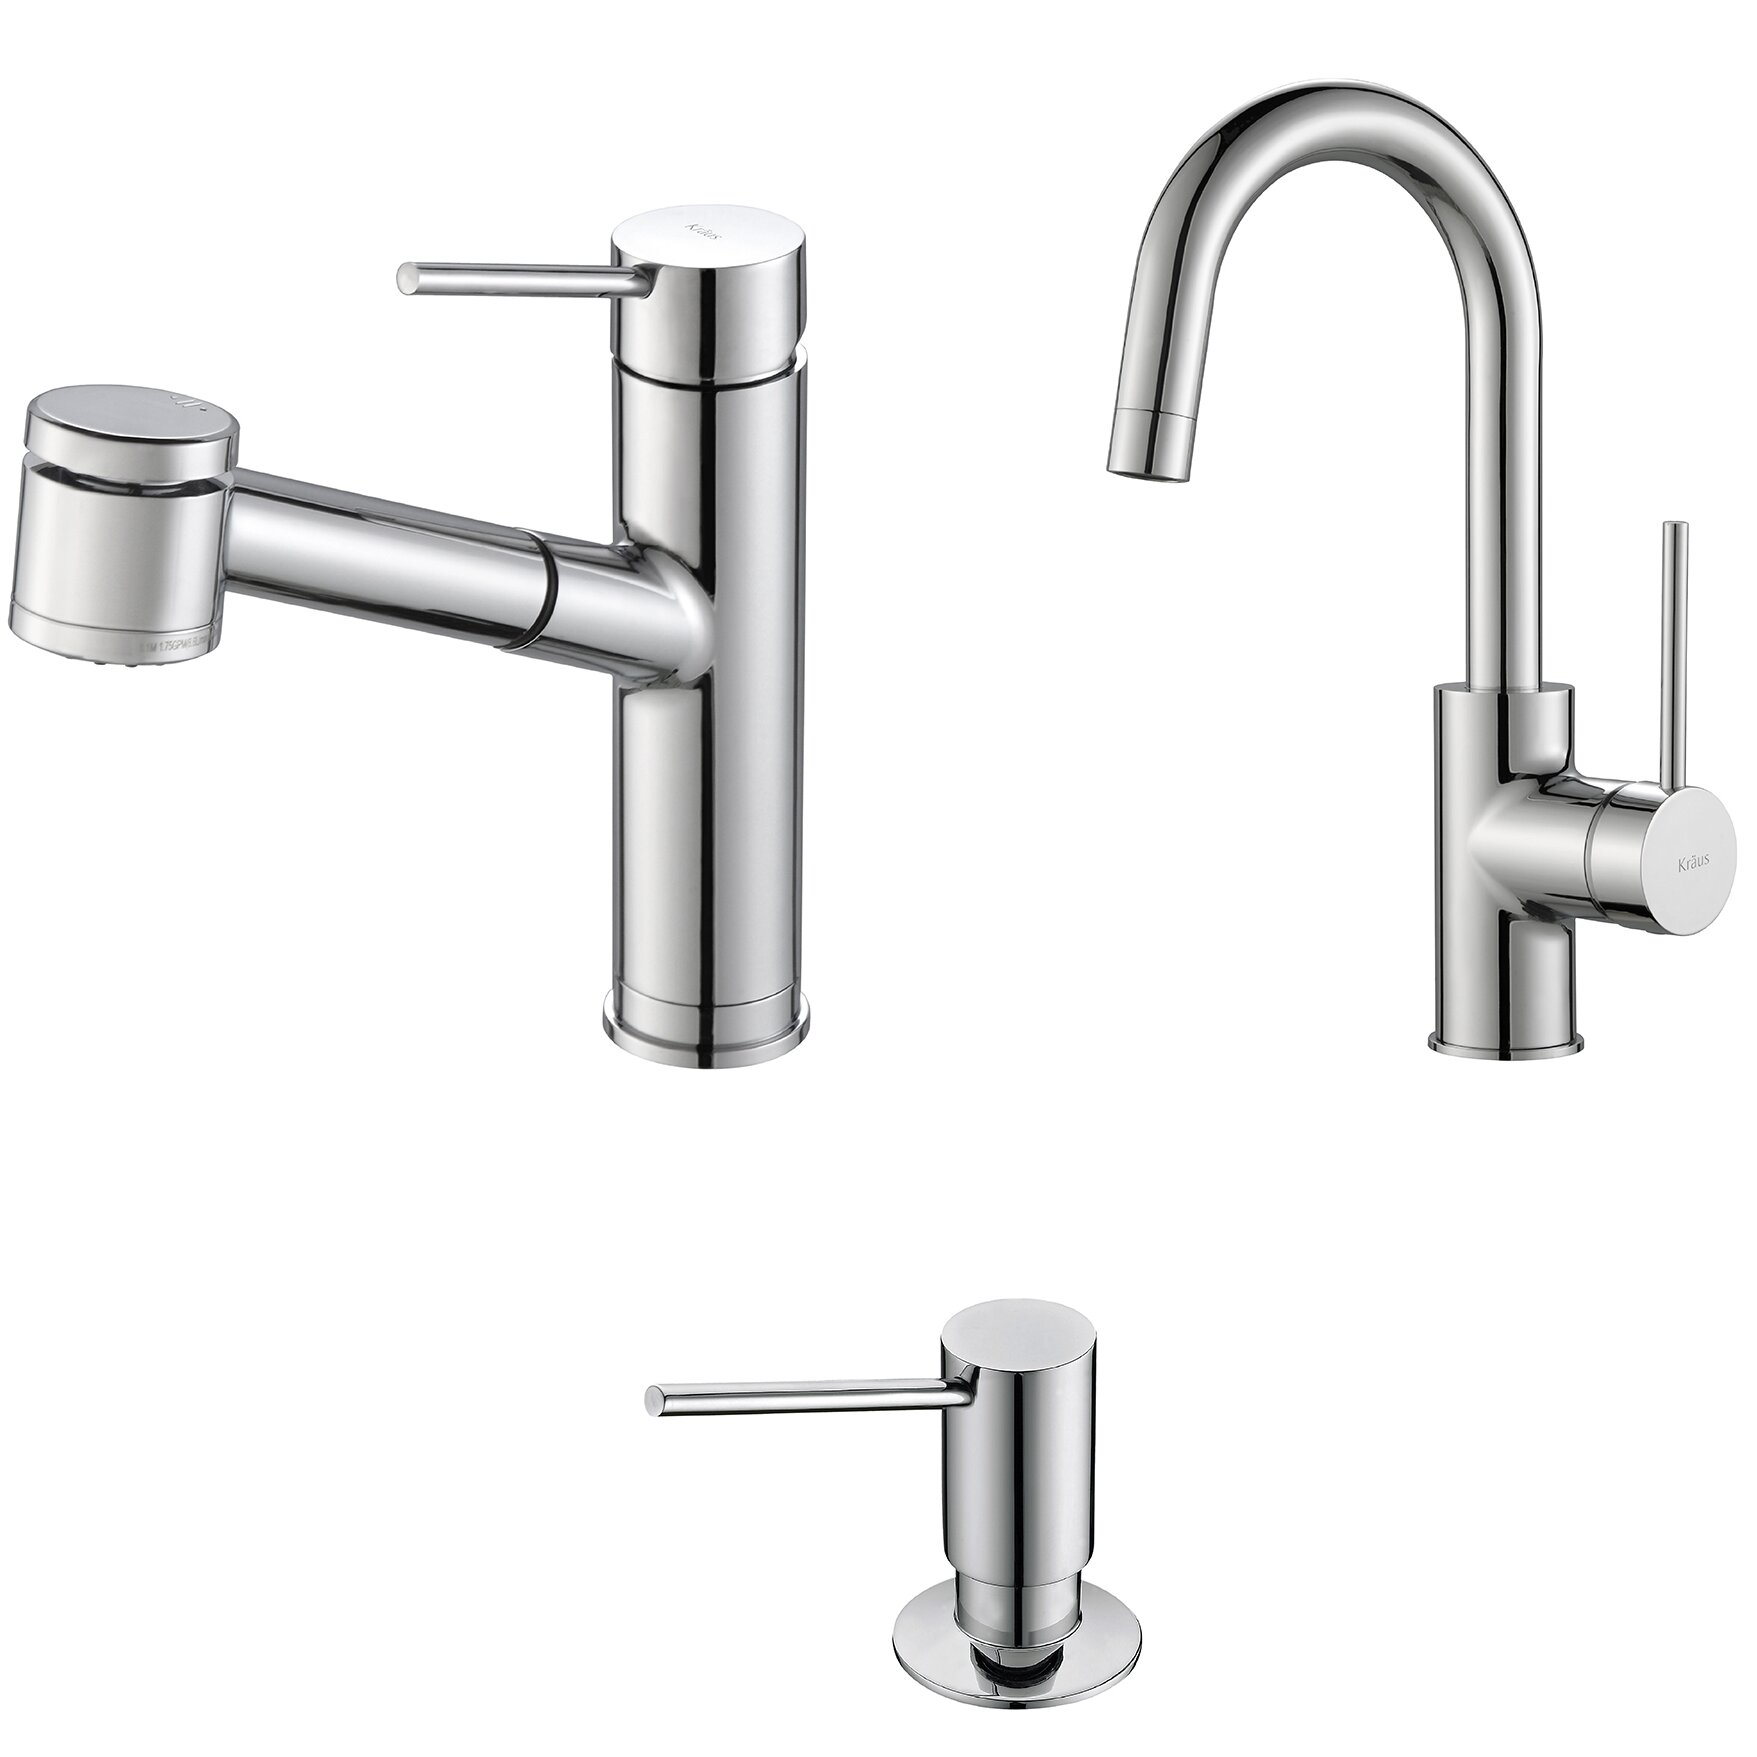 Kraus oletto pull out kitchen faucet with bar prep faucet for Faucet soap dispenser placement